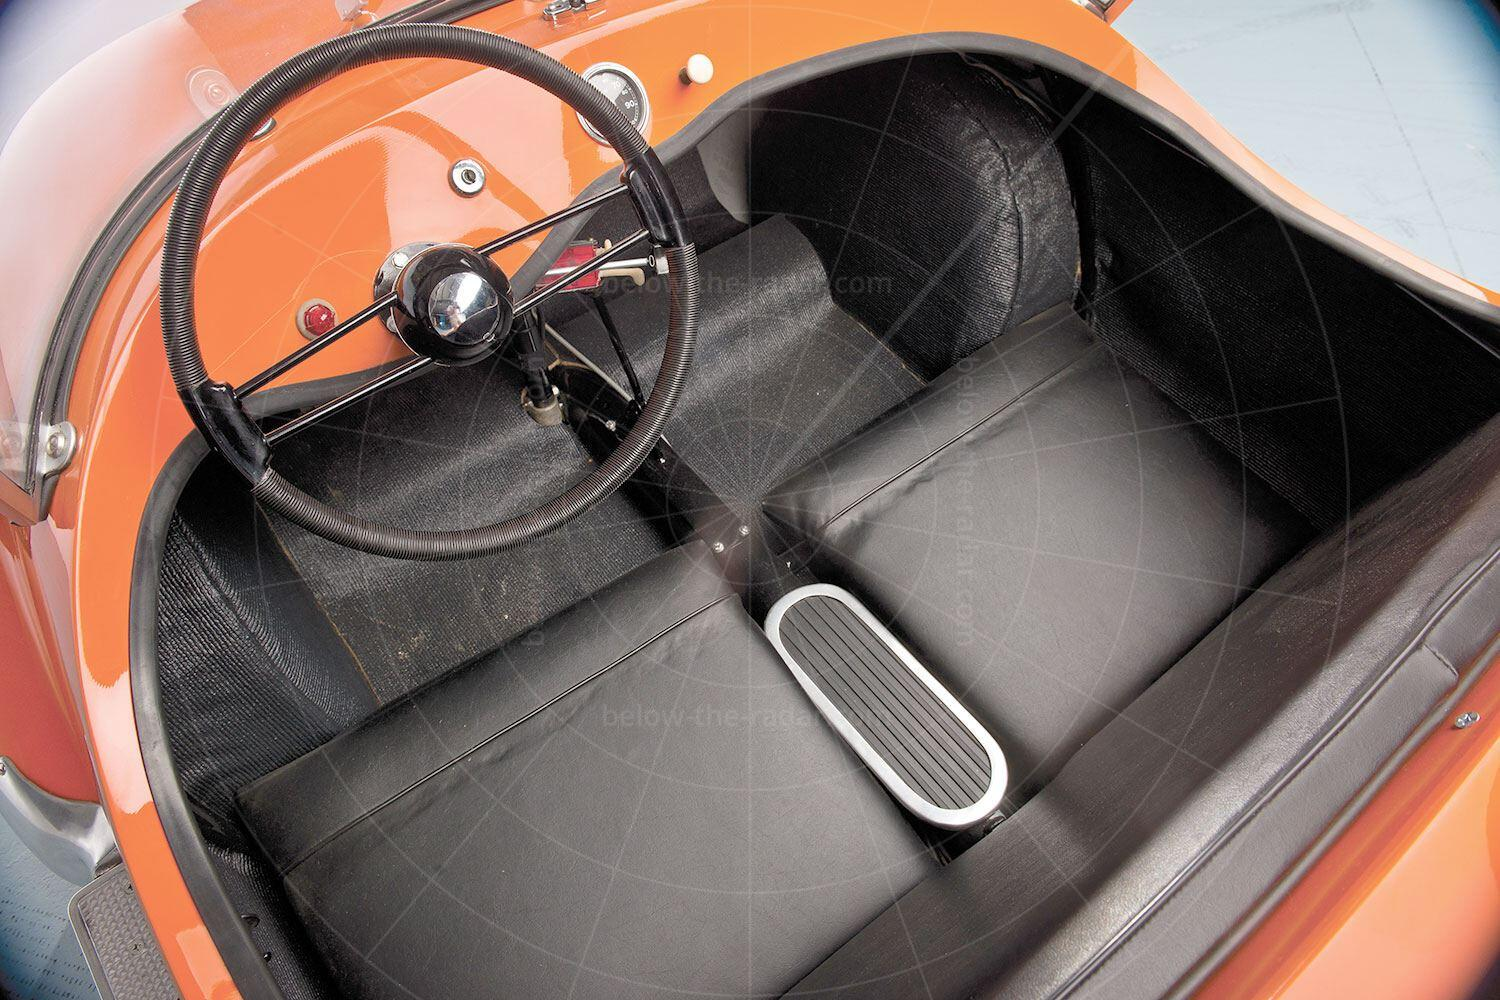 Avolette Record Deluxe interior Pic: RM Sotheby's | Avolette Record Deluxe interior